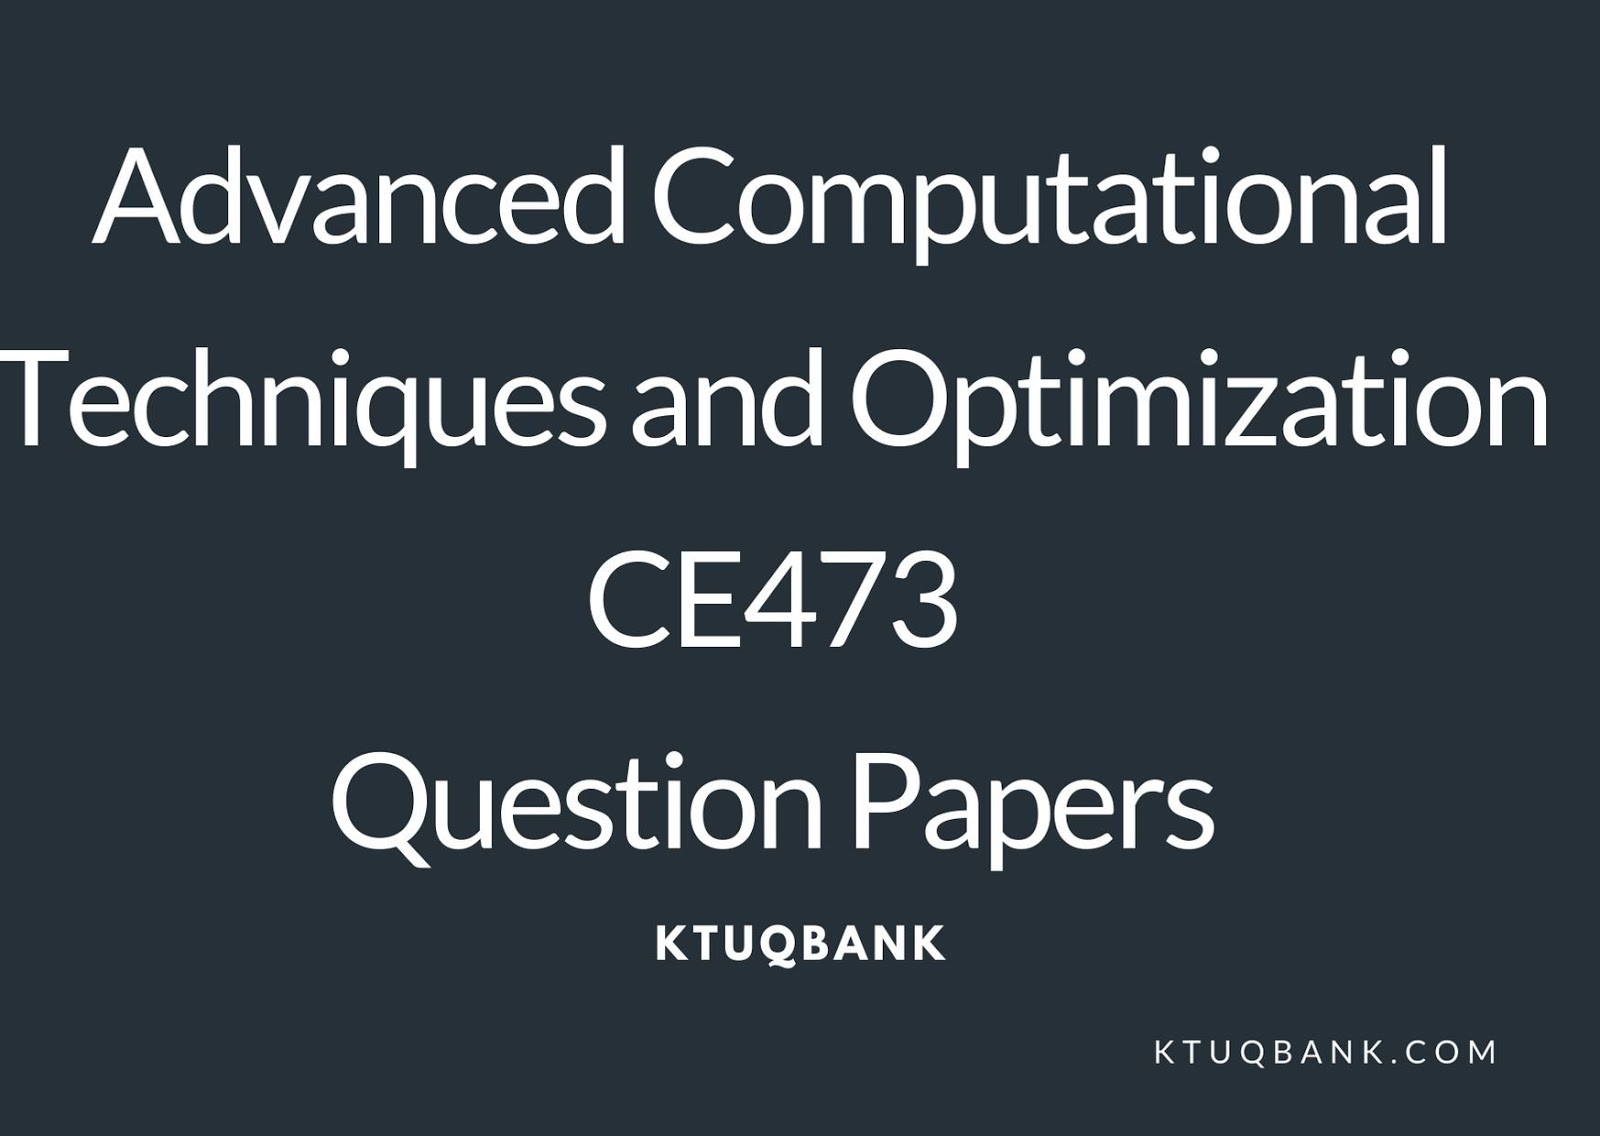 Advanced Computational Techniques and Optimization | CE473 | Question Papers (2015 batch)